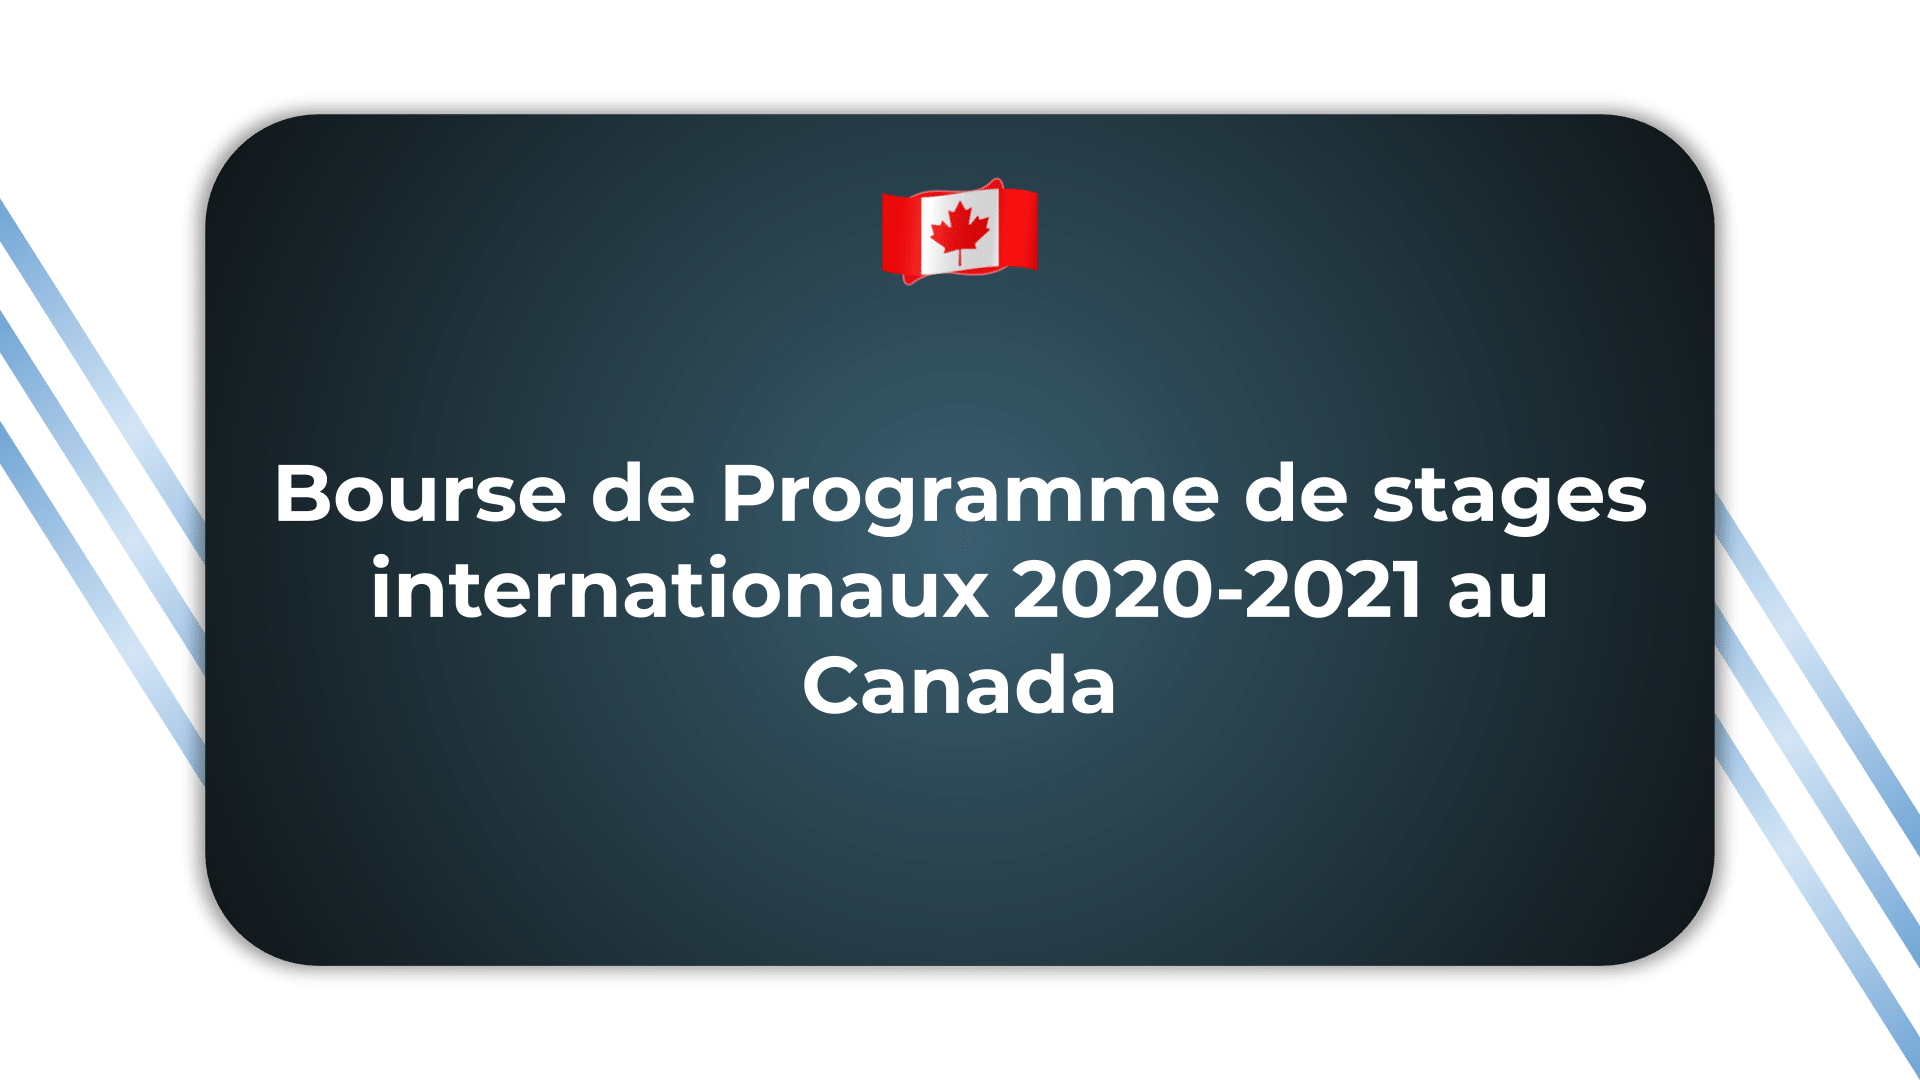 Bourse de Programme de stages internationaux